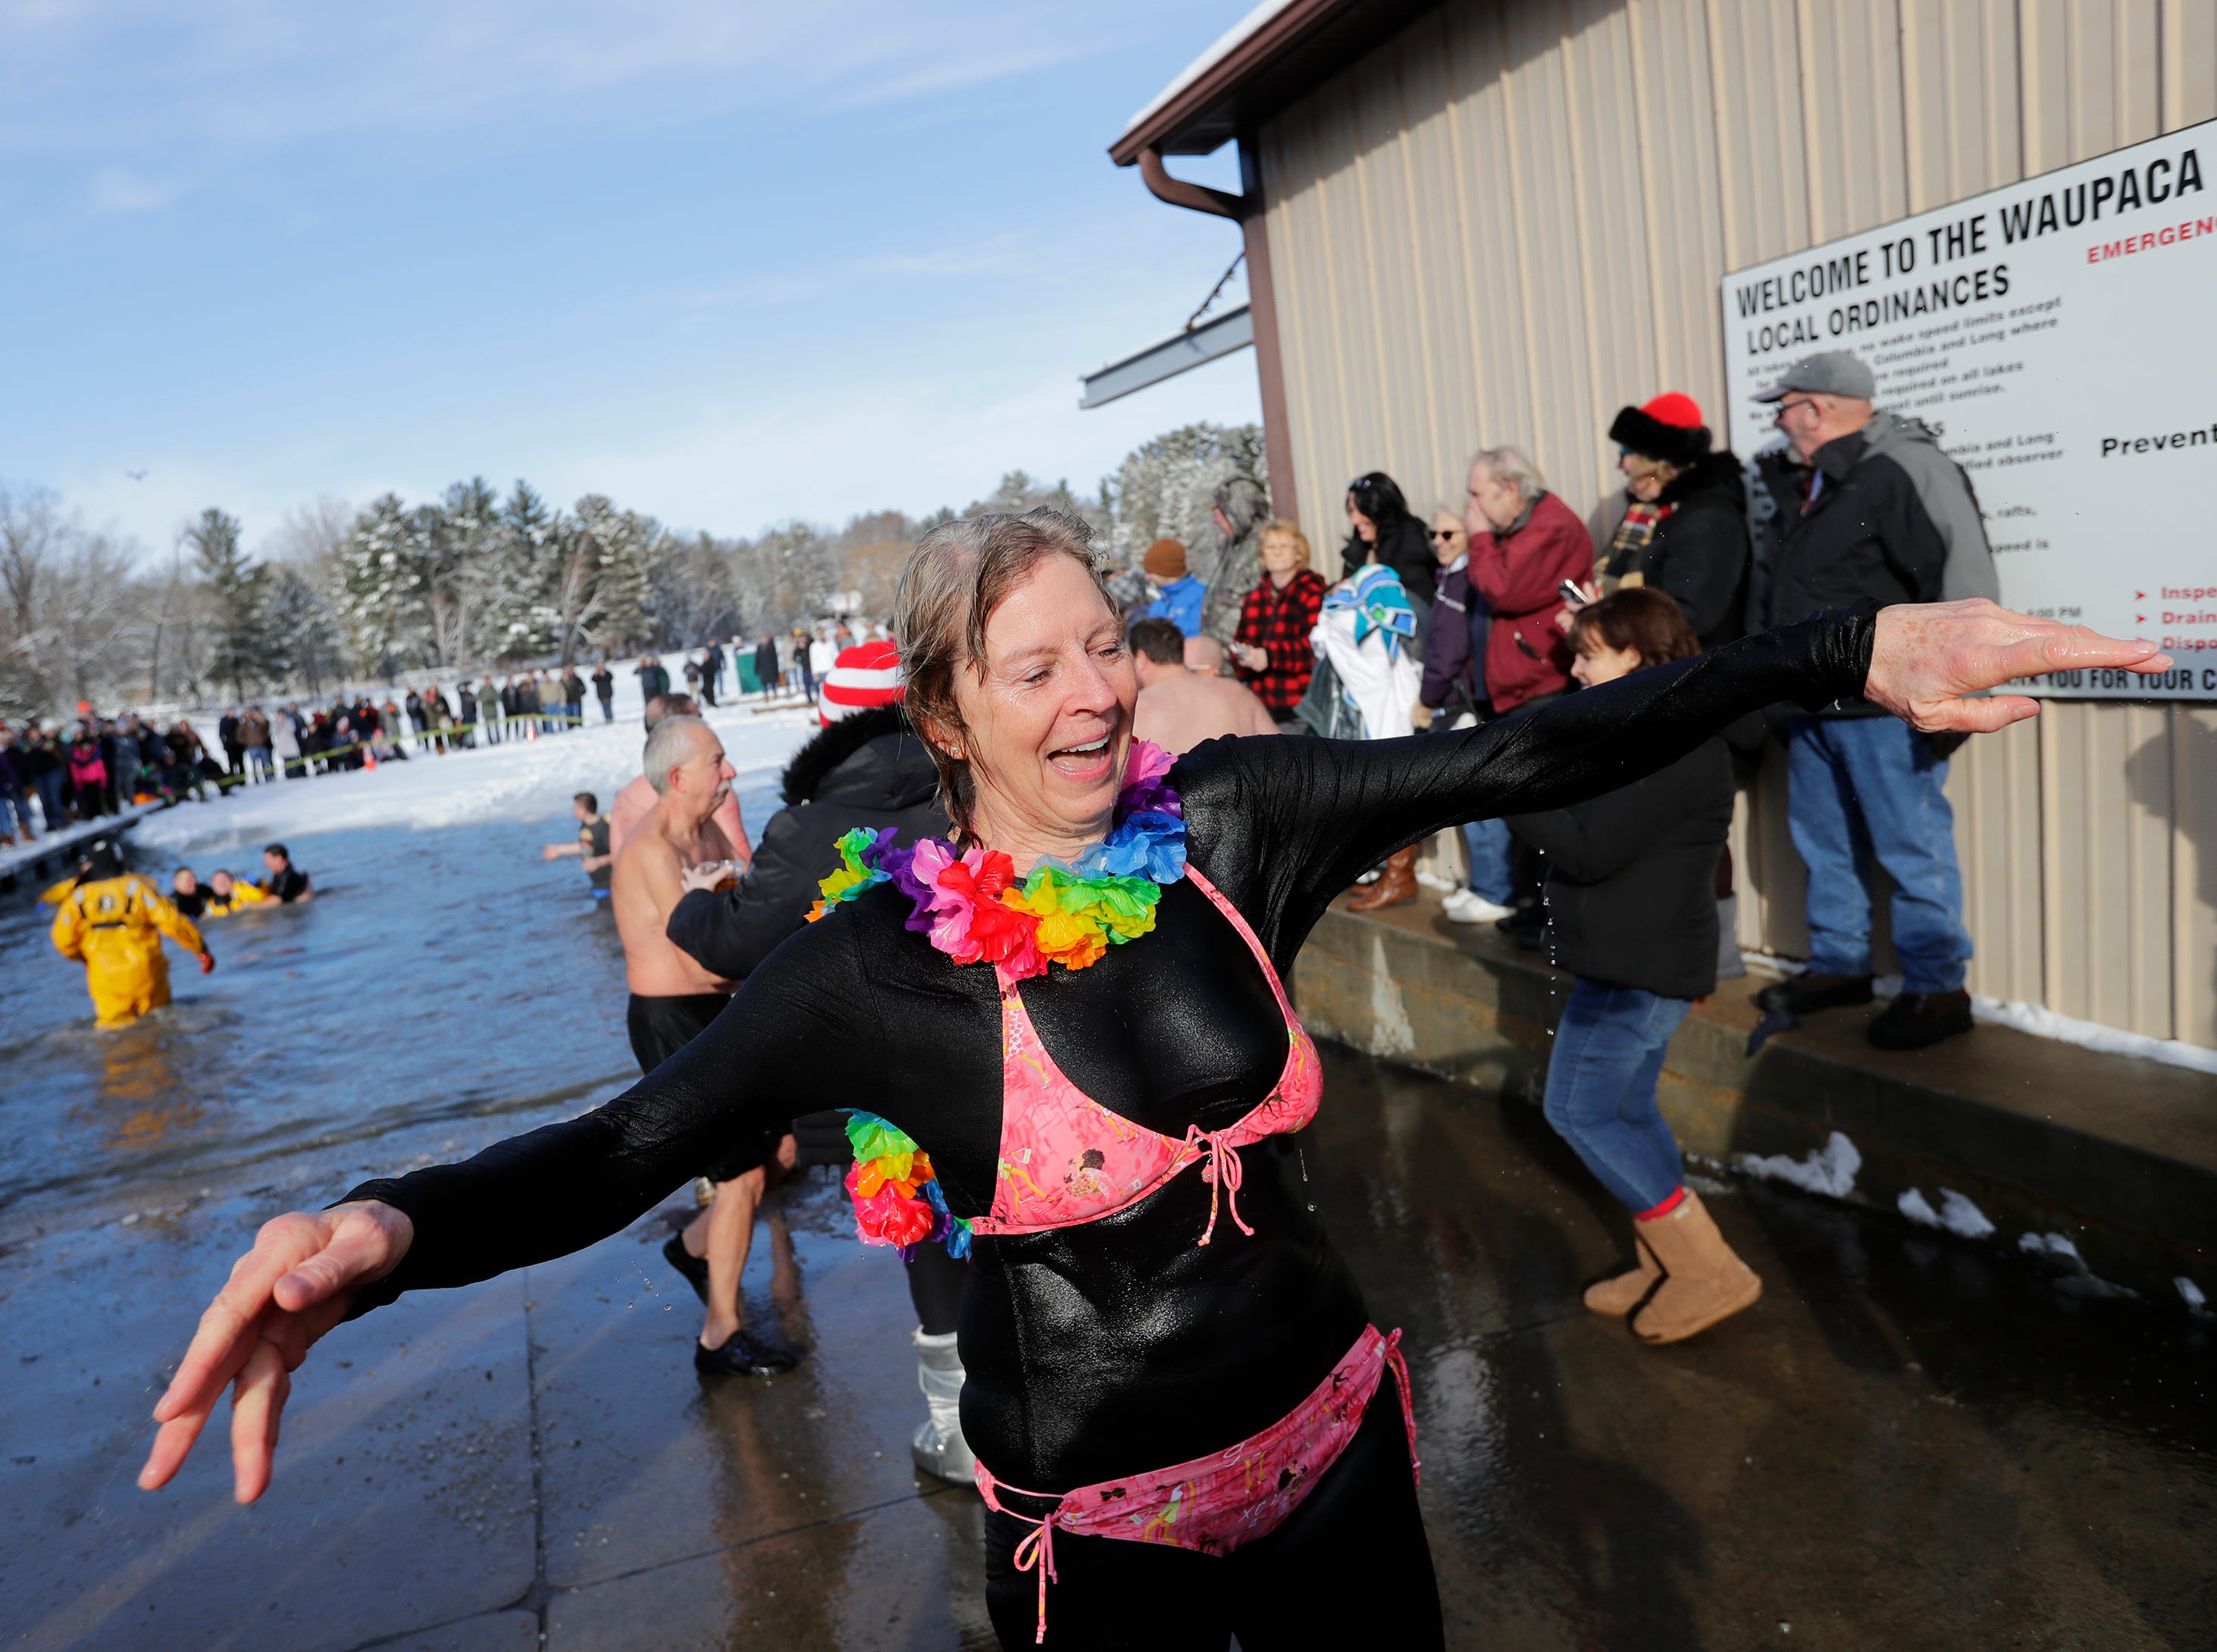 Sara Bredesen of Waupaca emerges from the bitter water during the Polar Bear Plunge Tuesday, January 1, 2019, at Becker Marine on Lime Kiln Lake in Waupaca, Wis. 